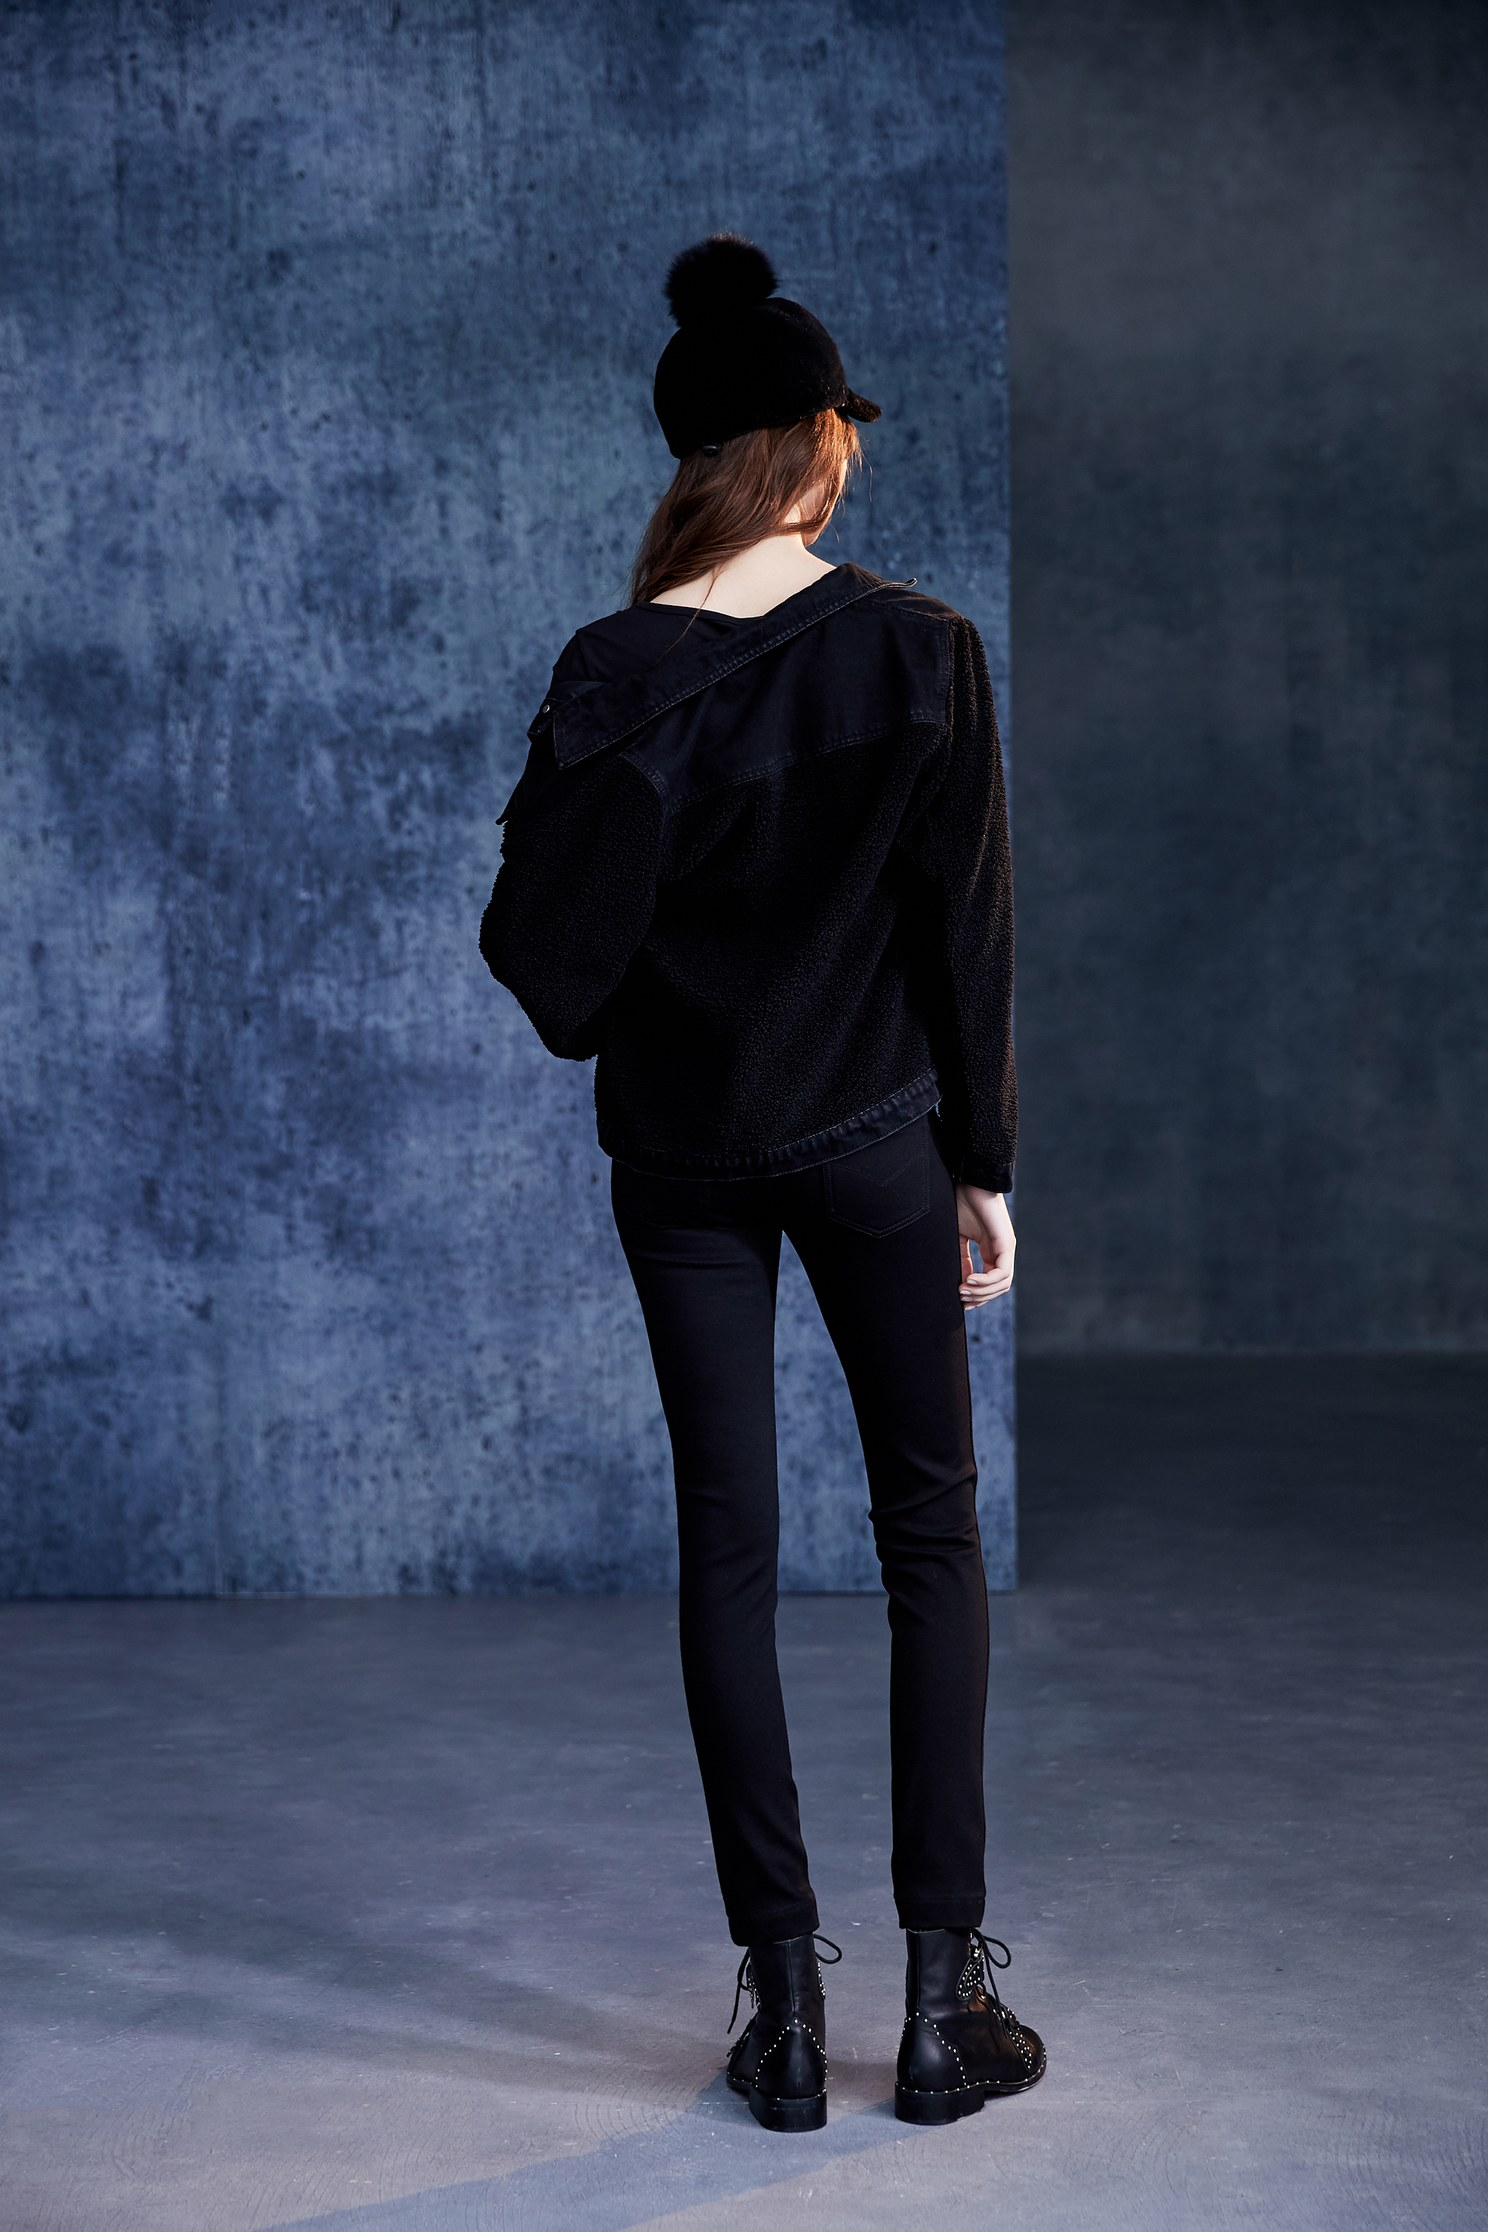 Fashion fitted cut trousers with a drawstring waist,skinnypants,pants,pants,thinpants,blacktrousers